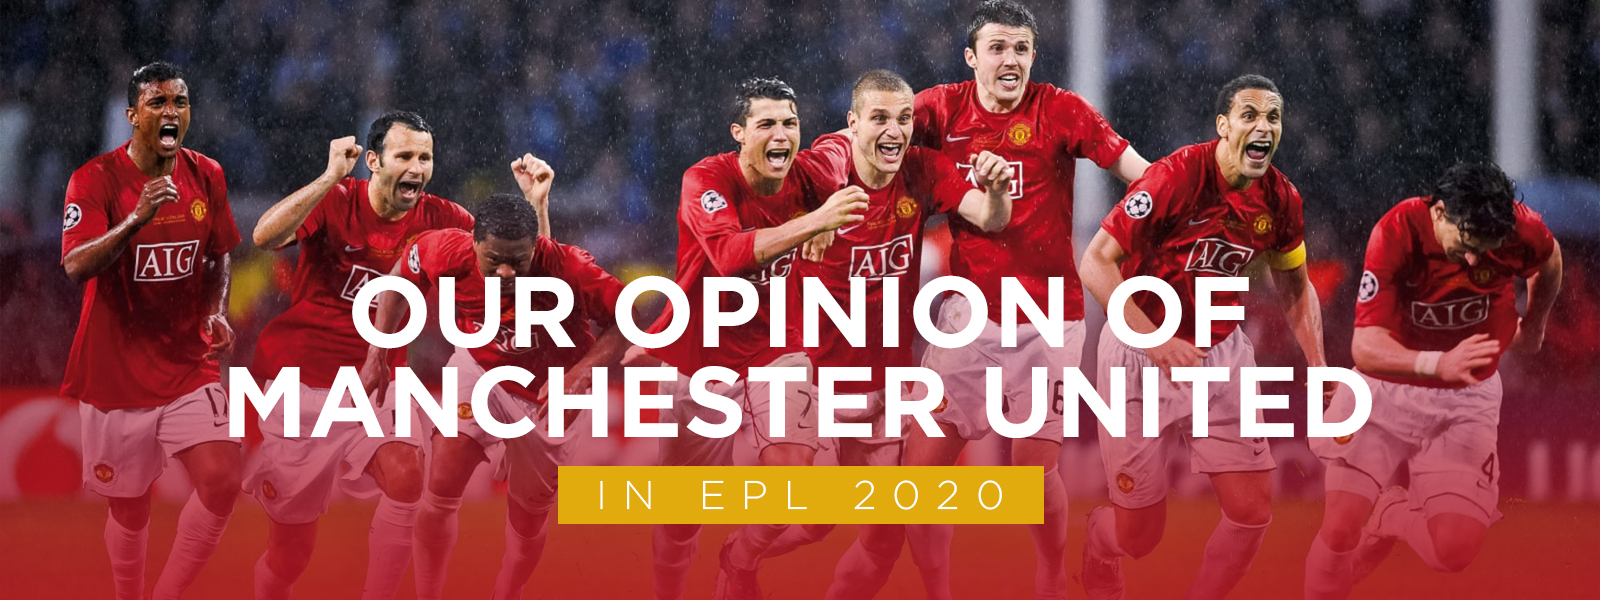 Our Opinion of Manchester United In English Premier League 2020